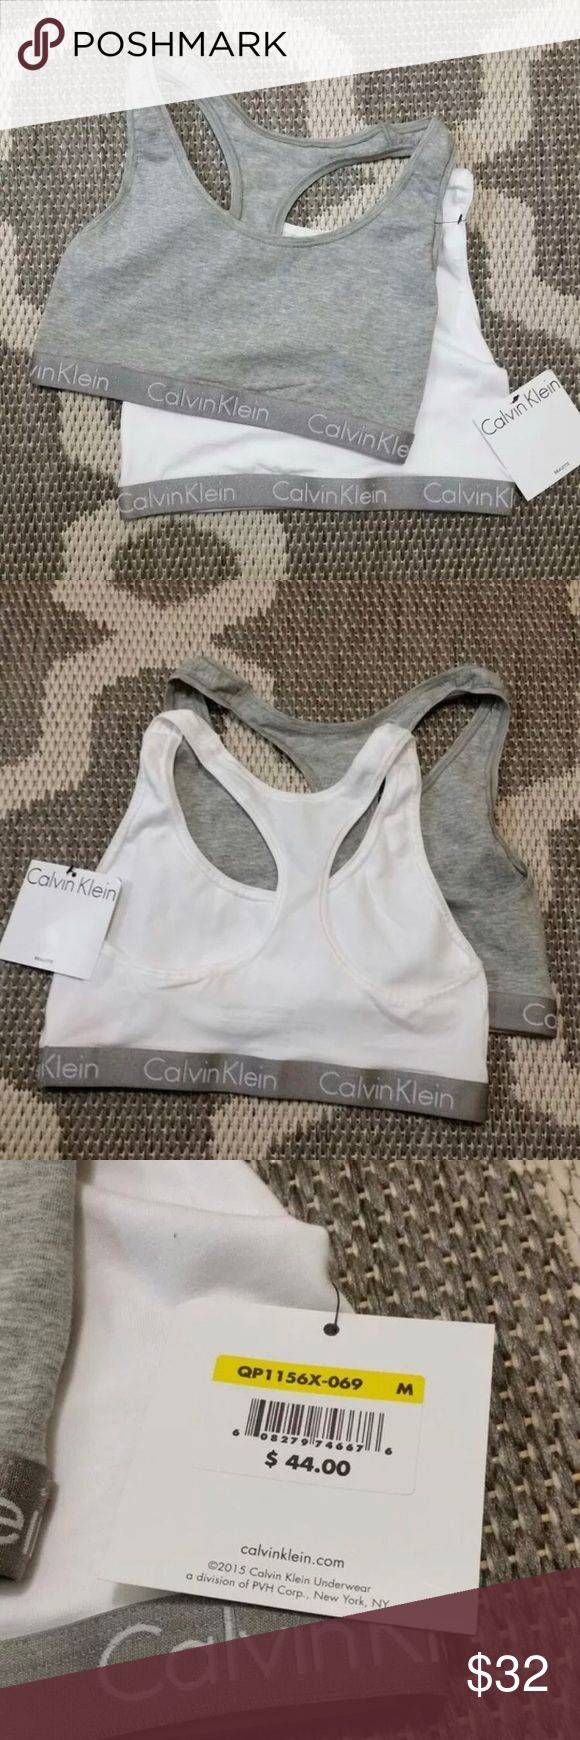 Calvin Klein Bralette Set of 2 Medium Calvin Klein Bralette Set of 2 Size Medium (38A, 36B, 34C-34D) One in grey, one in white. Both with silver Calvin Klein repeated logo band.  Material blend: 95% cotton, 5% elastane.  Style: QP1156X  Retail $44 Made in Bangladesh Please message me with any questions or concerns smoke-free and pet-free home Calvin Klein Intimates & Sleepwear Bras